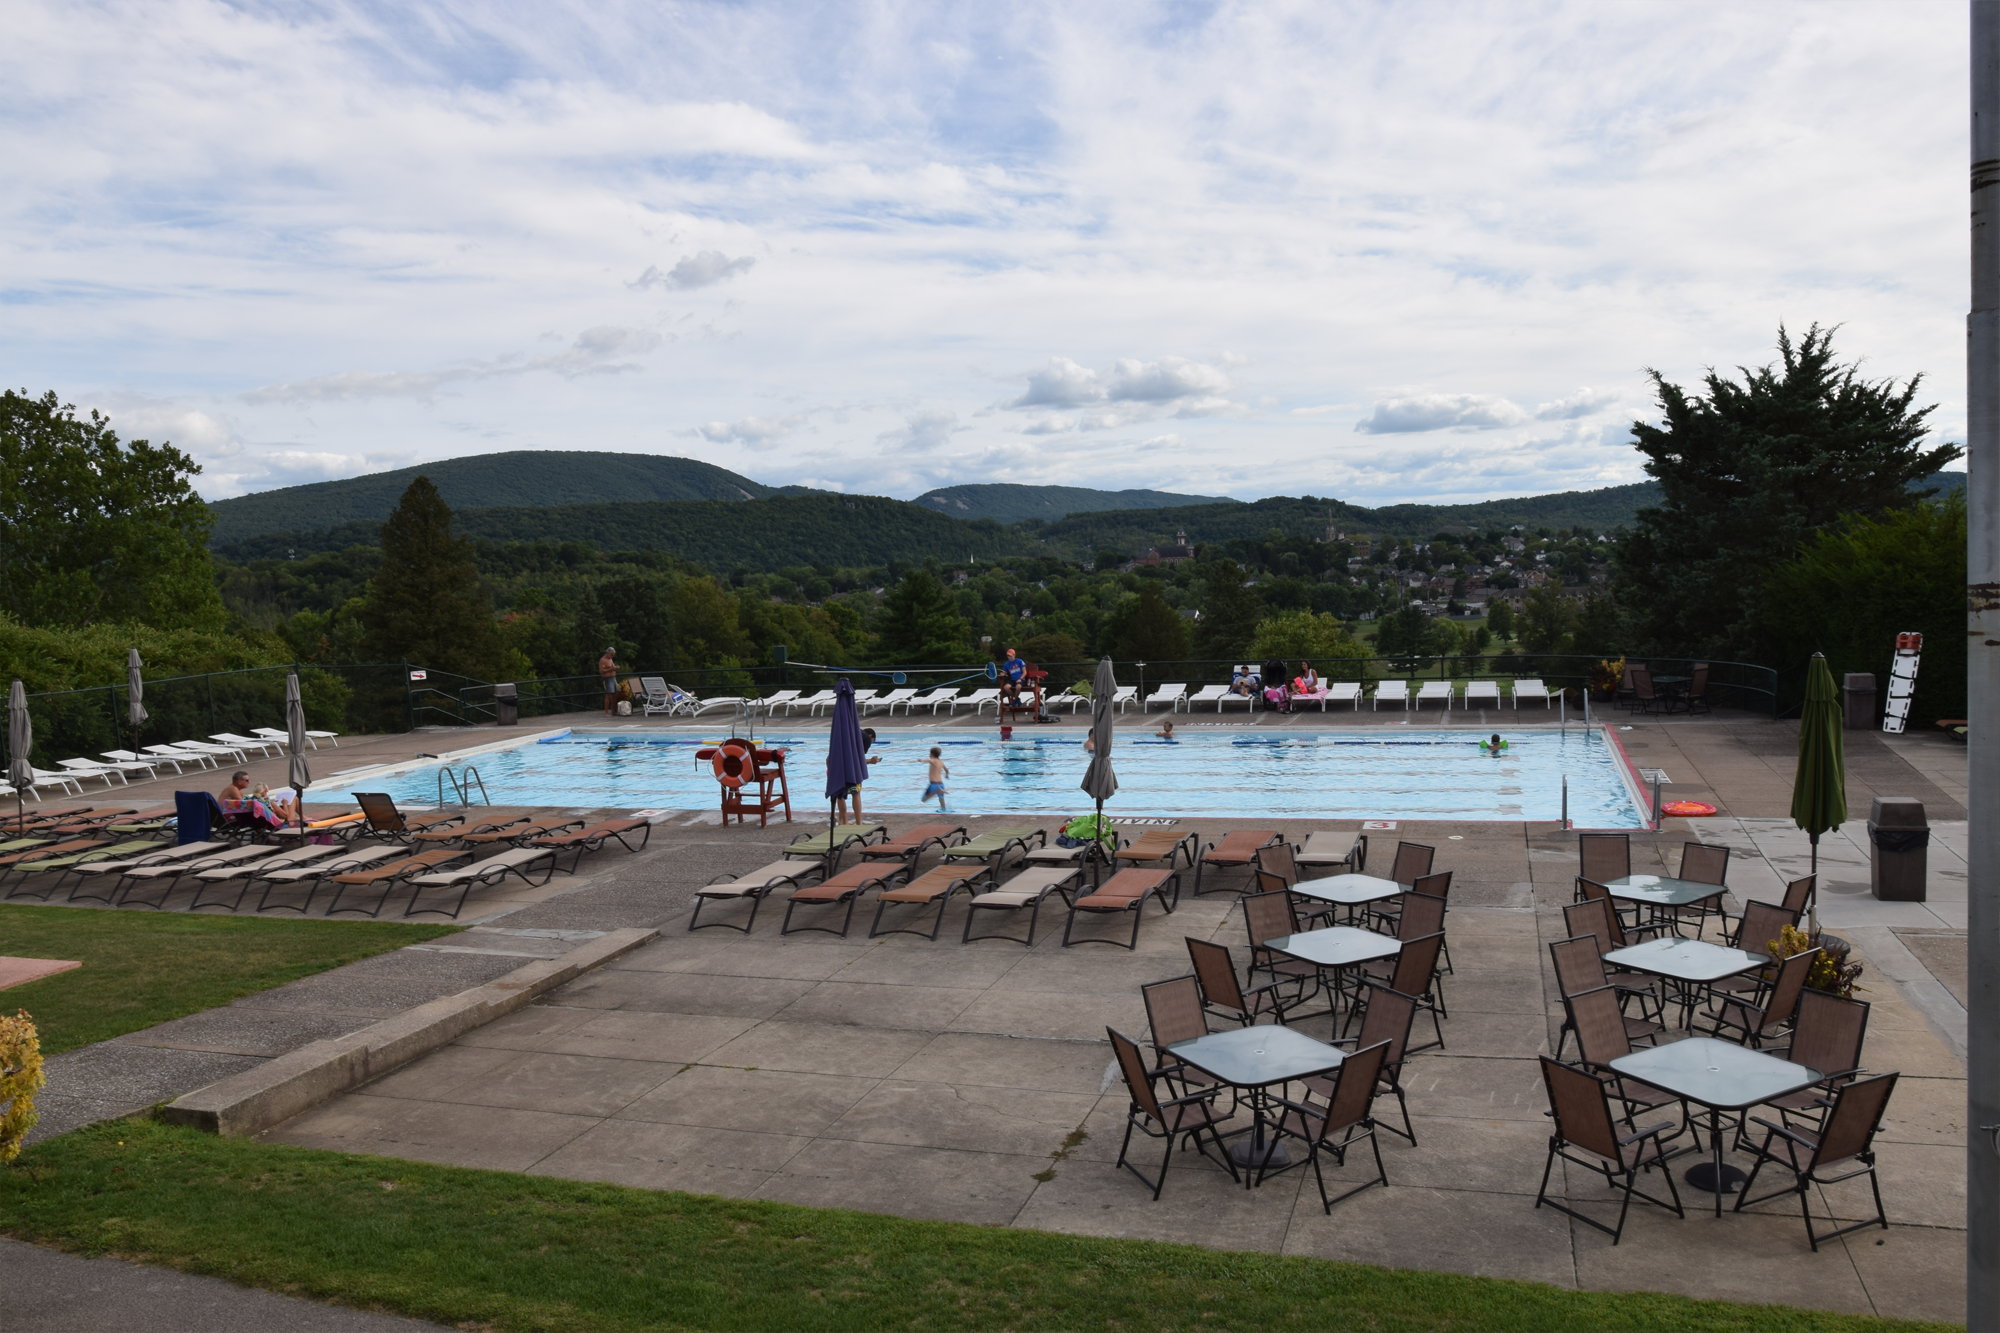 Blairmont Club pool with many lounge chairs and patio tables with scenic view of Hollidaysburg